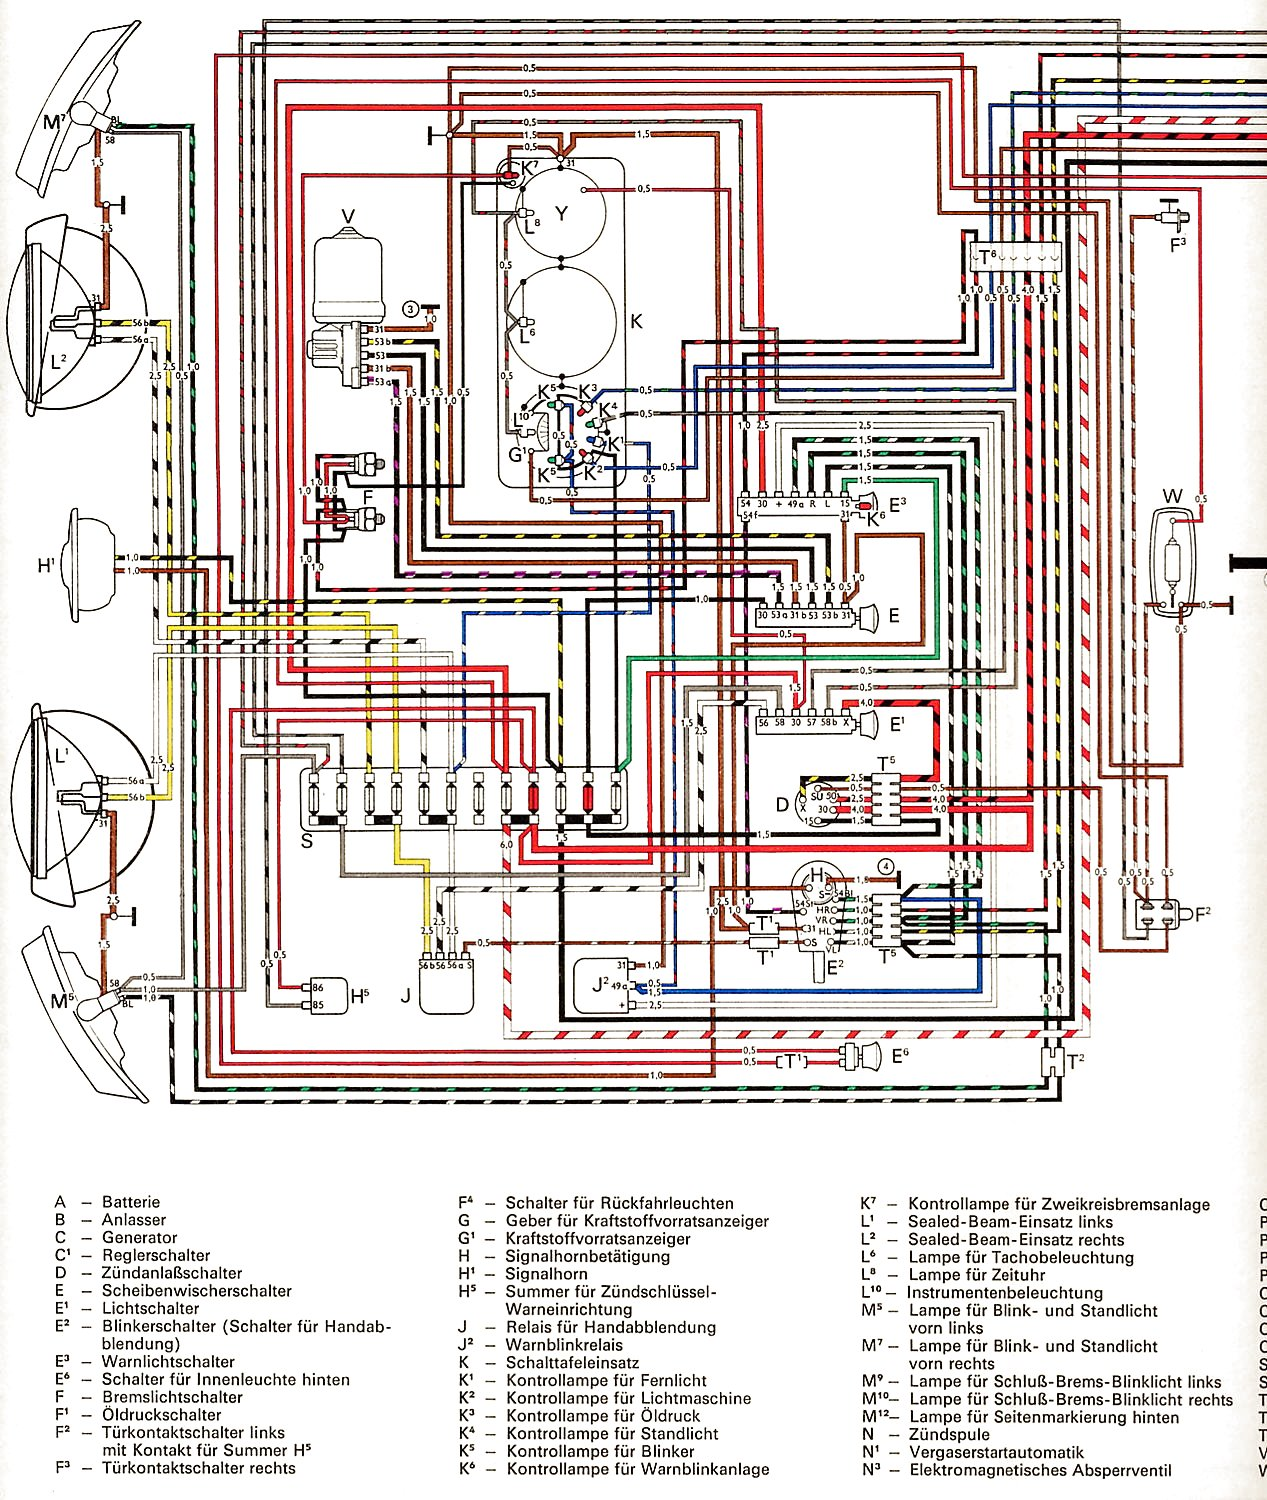 vw beetle schematic wiring diagram1970 vw engine diagram dd purebuild co \\u2022vw 1970 wiring diagram under hood 4 11